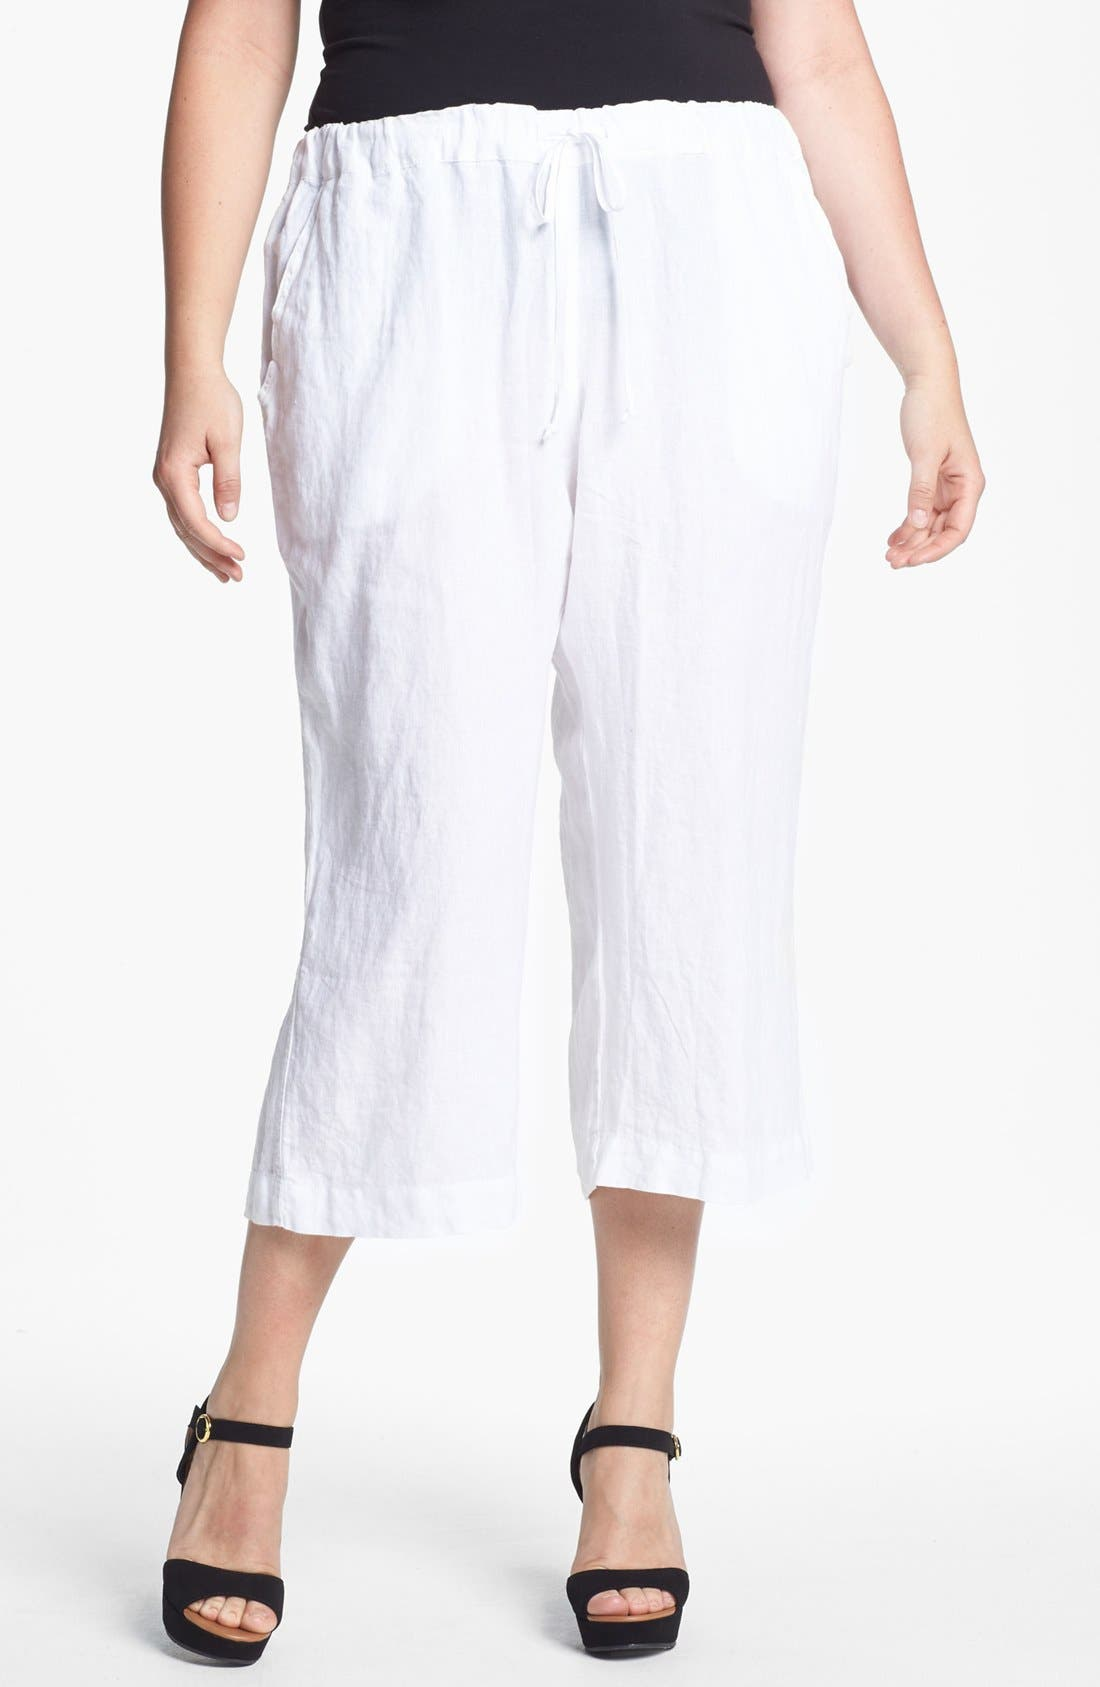 Alternate Image 1 Selected - Allen Allen Crop Linen Pants (Plus Size)